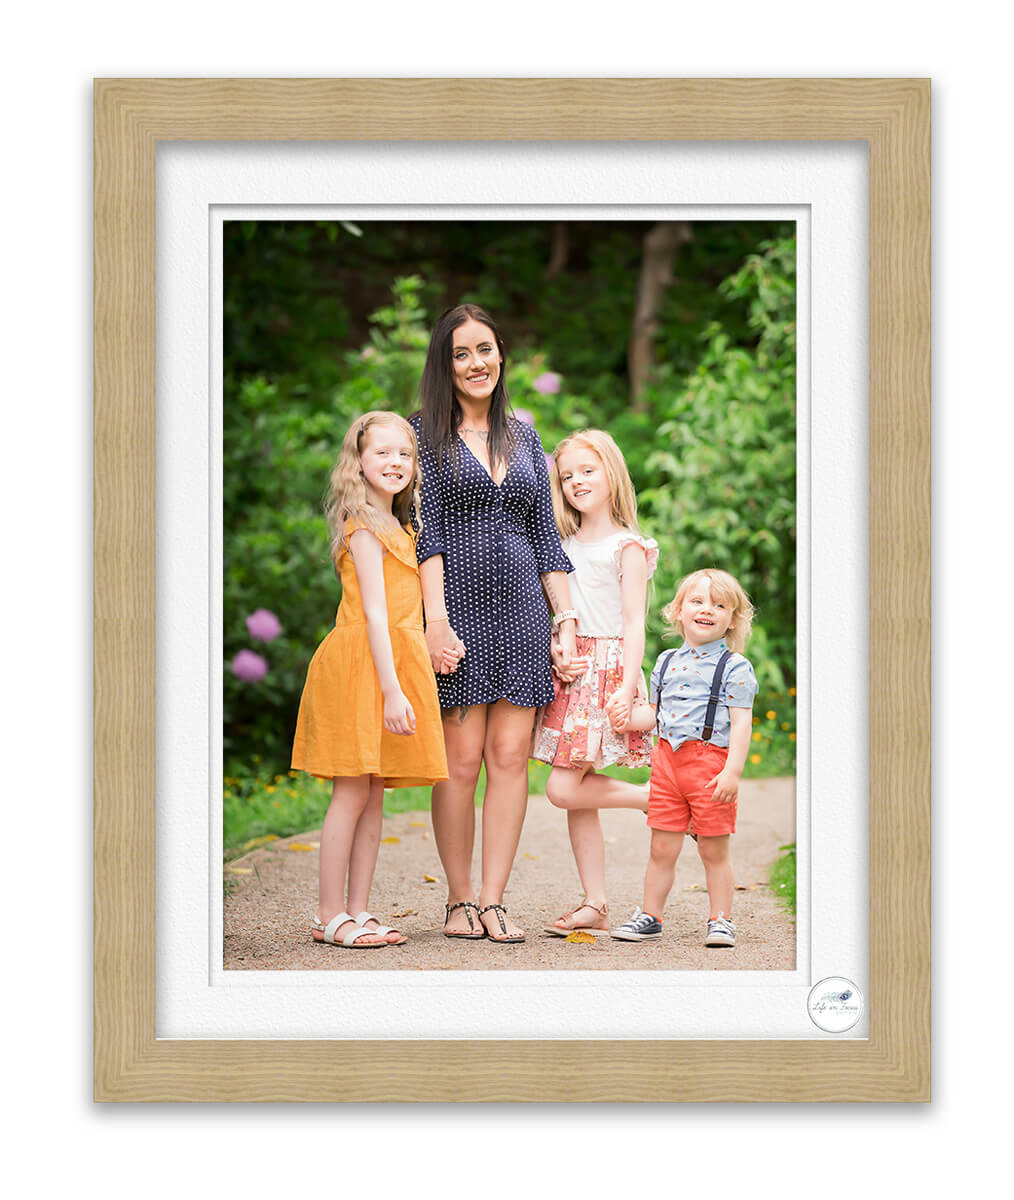 photo of family standing together in park Life in Focus Portraits Helensburgh outdoor photographer